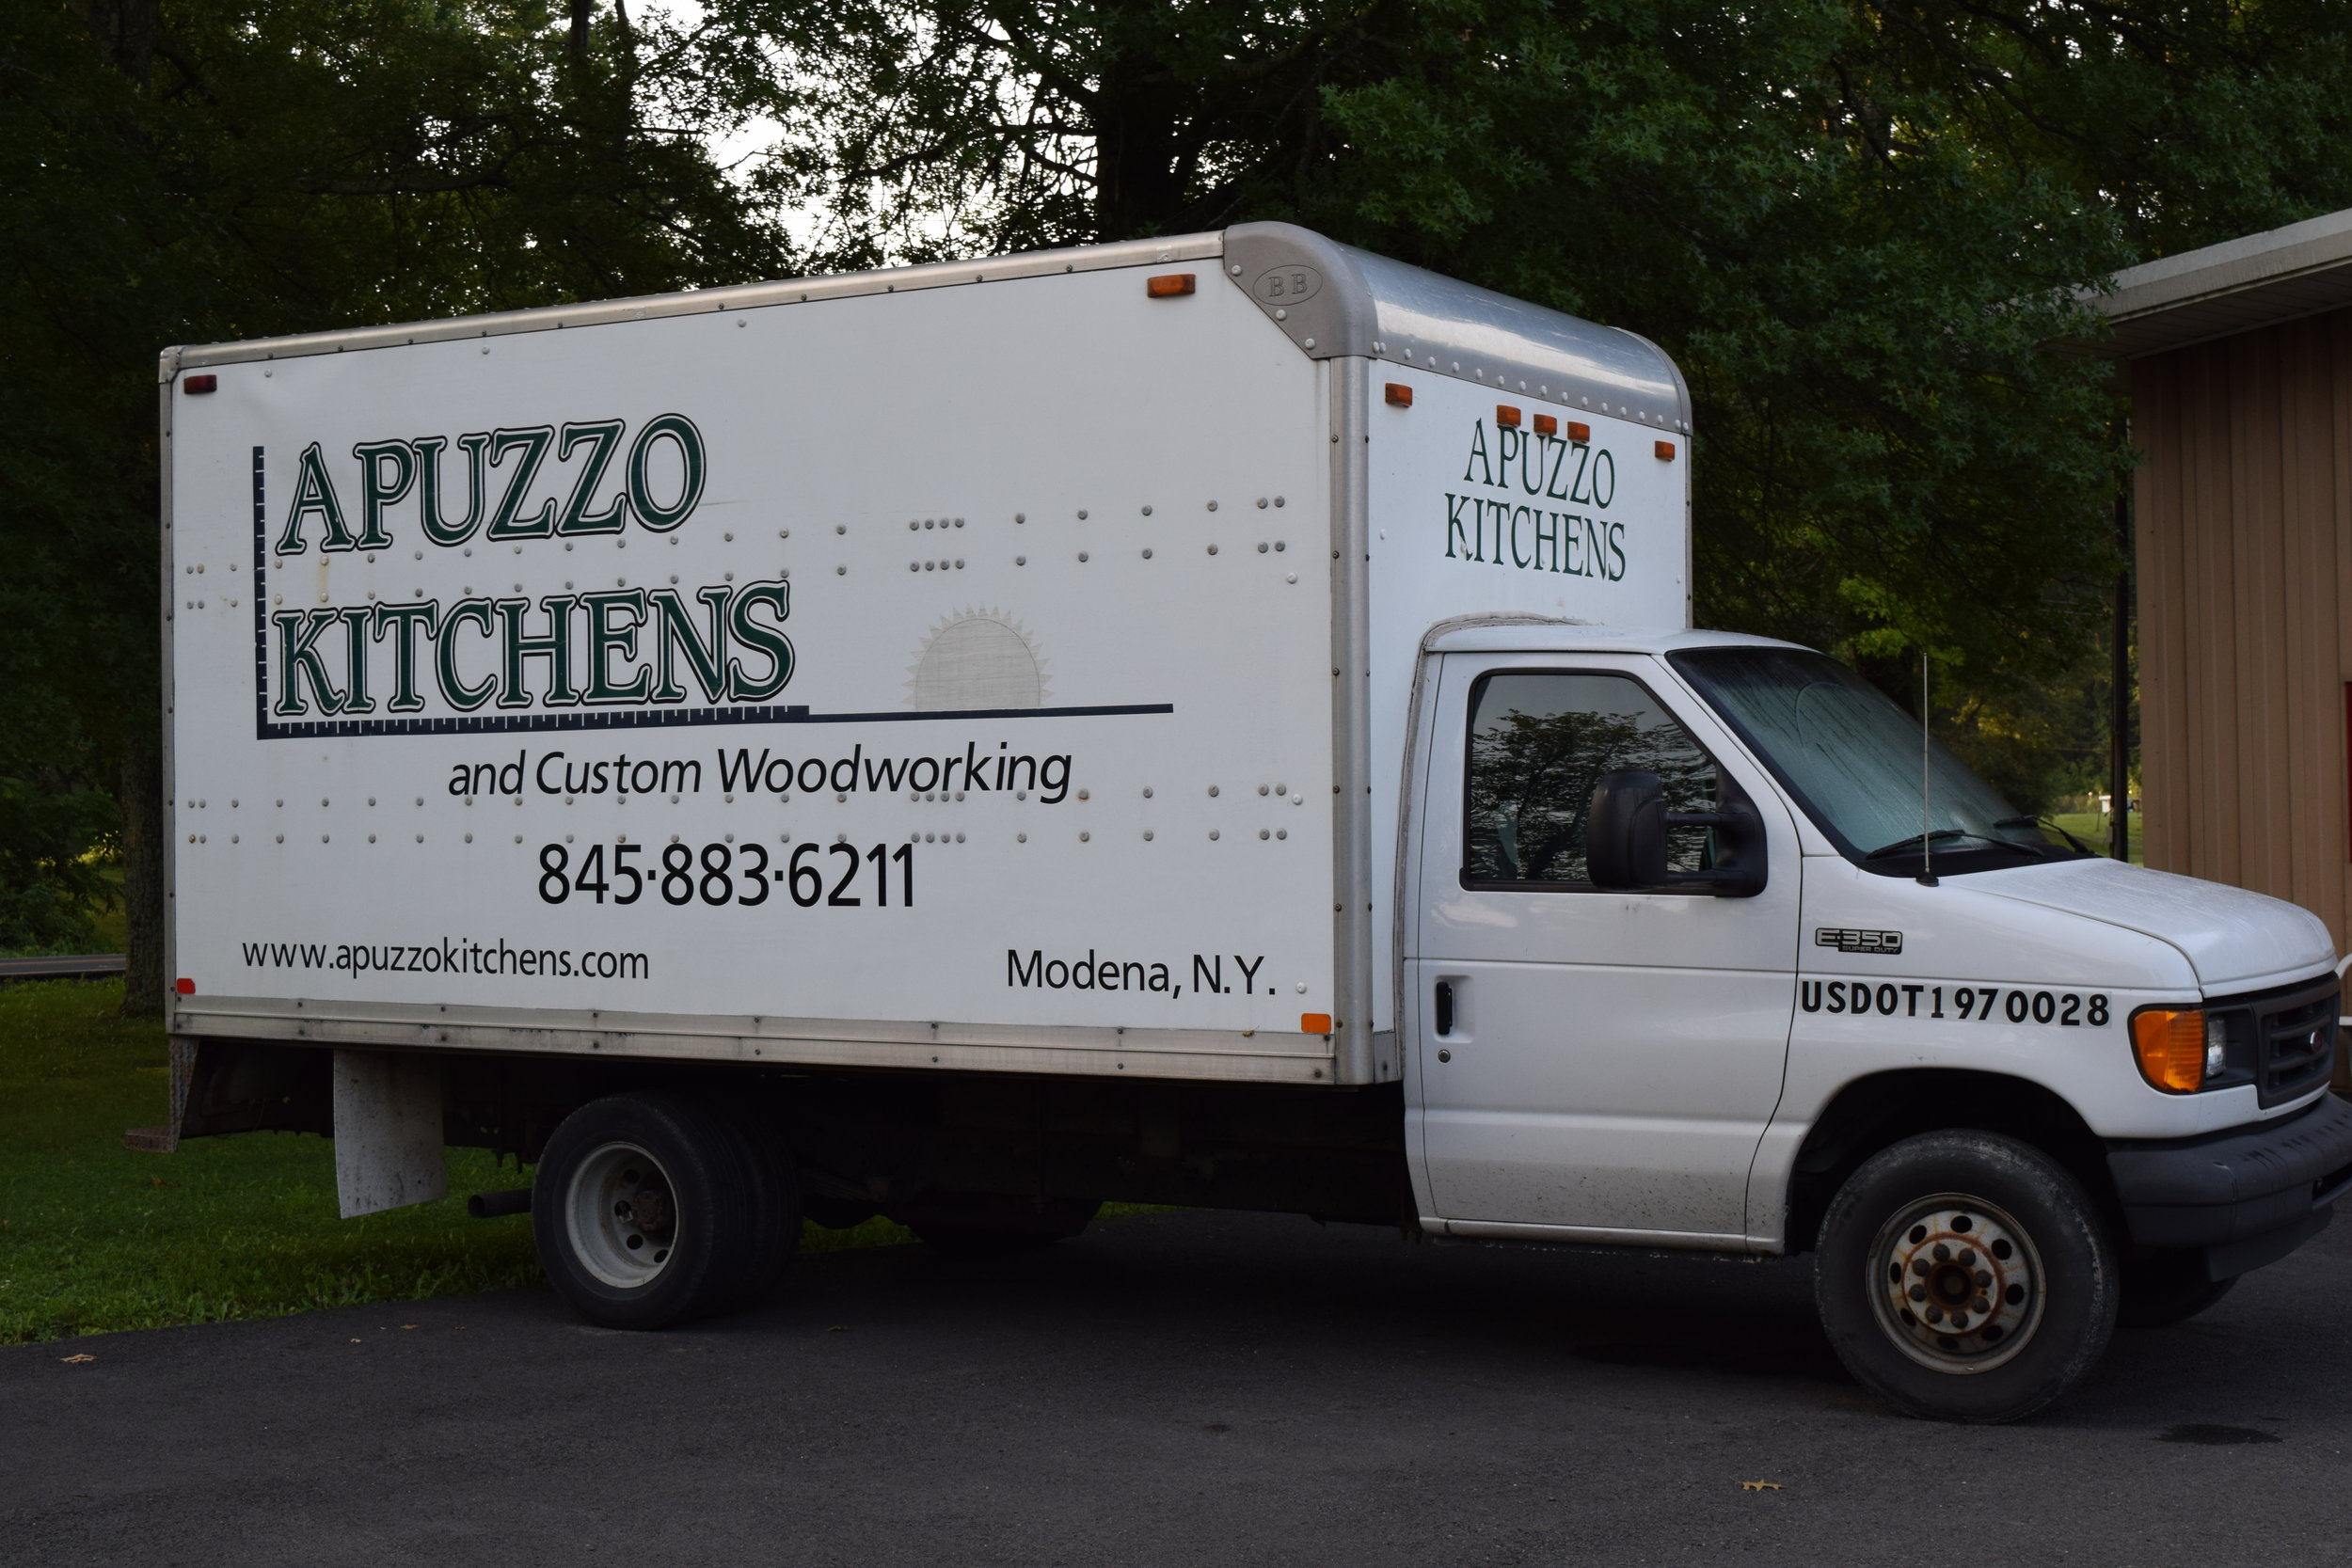 Keep your eyes open for our truck on the roads, we're always out delivering & installing kitchens in the area!